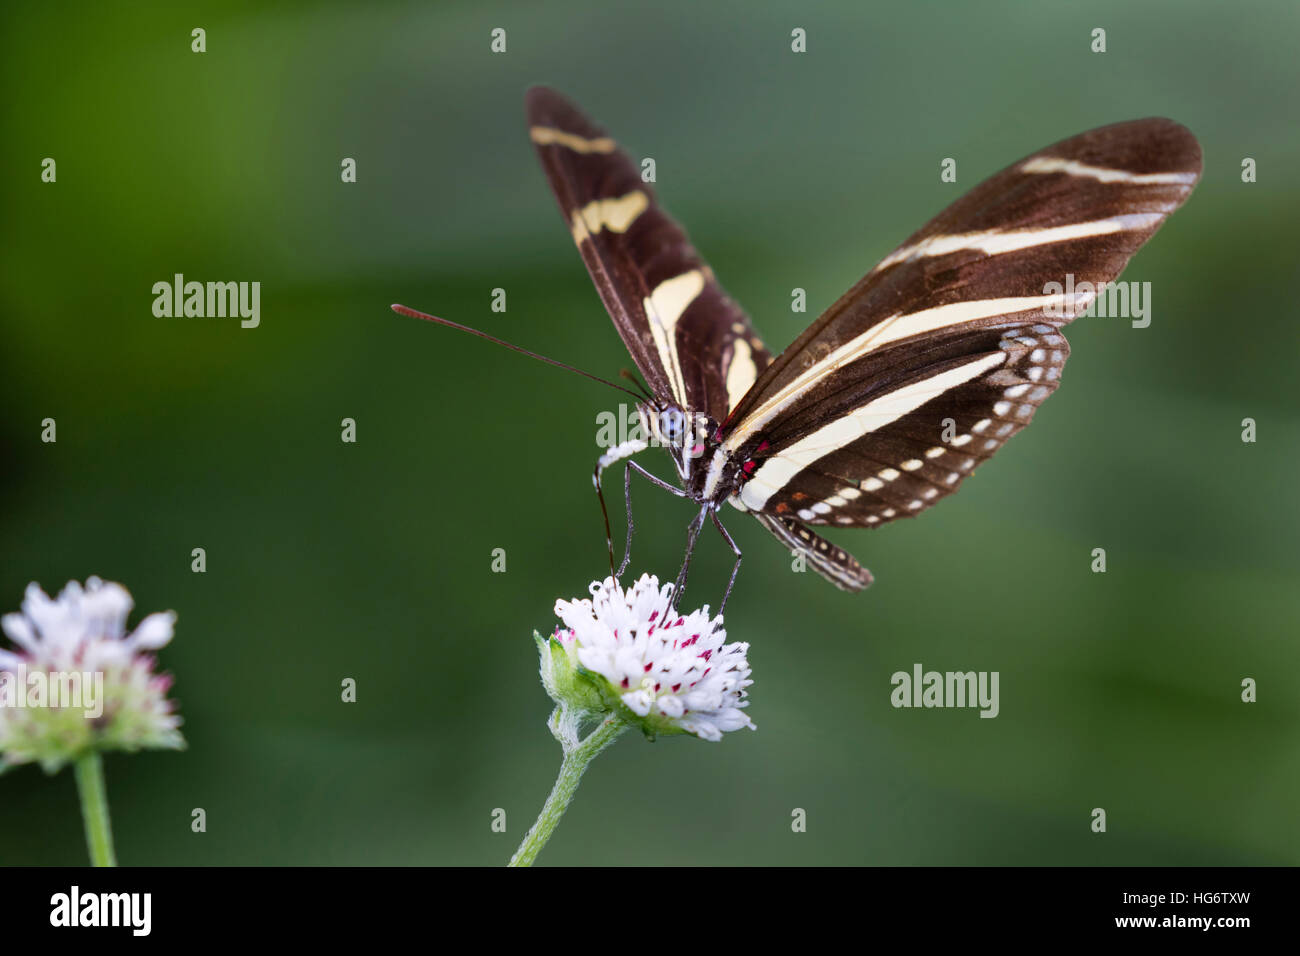 Zebra Longwing Butterfly (Heliconius charitonius) feeding on a flower, Belize, Central America - Stock Image